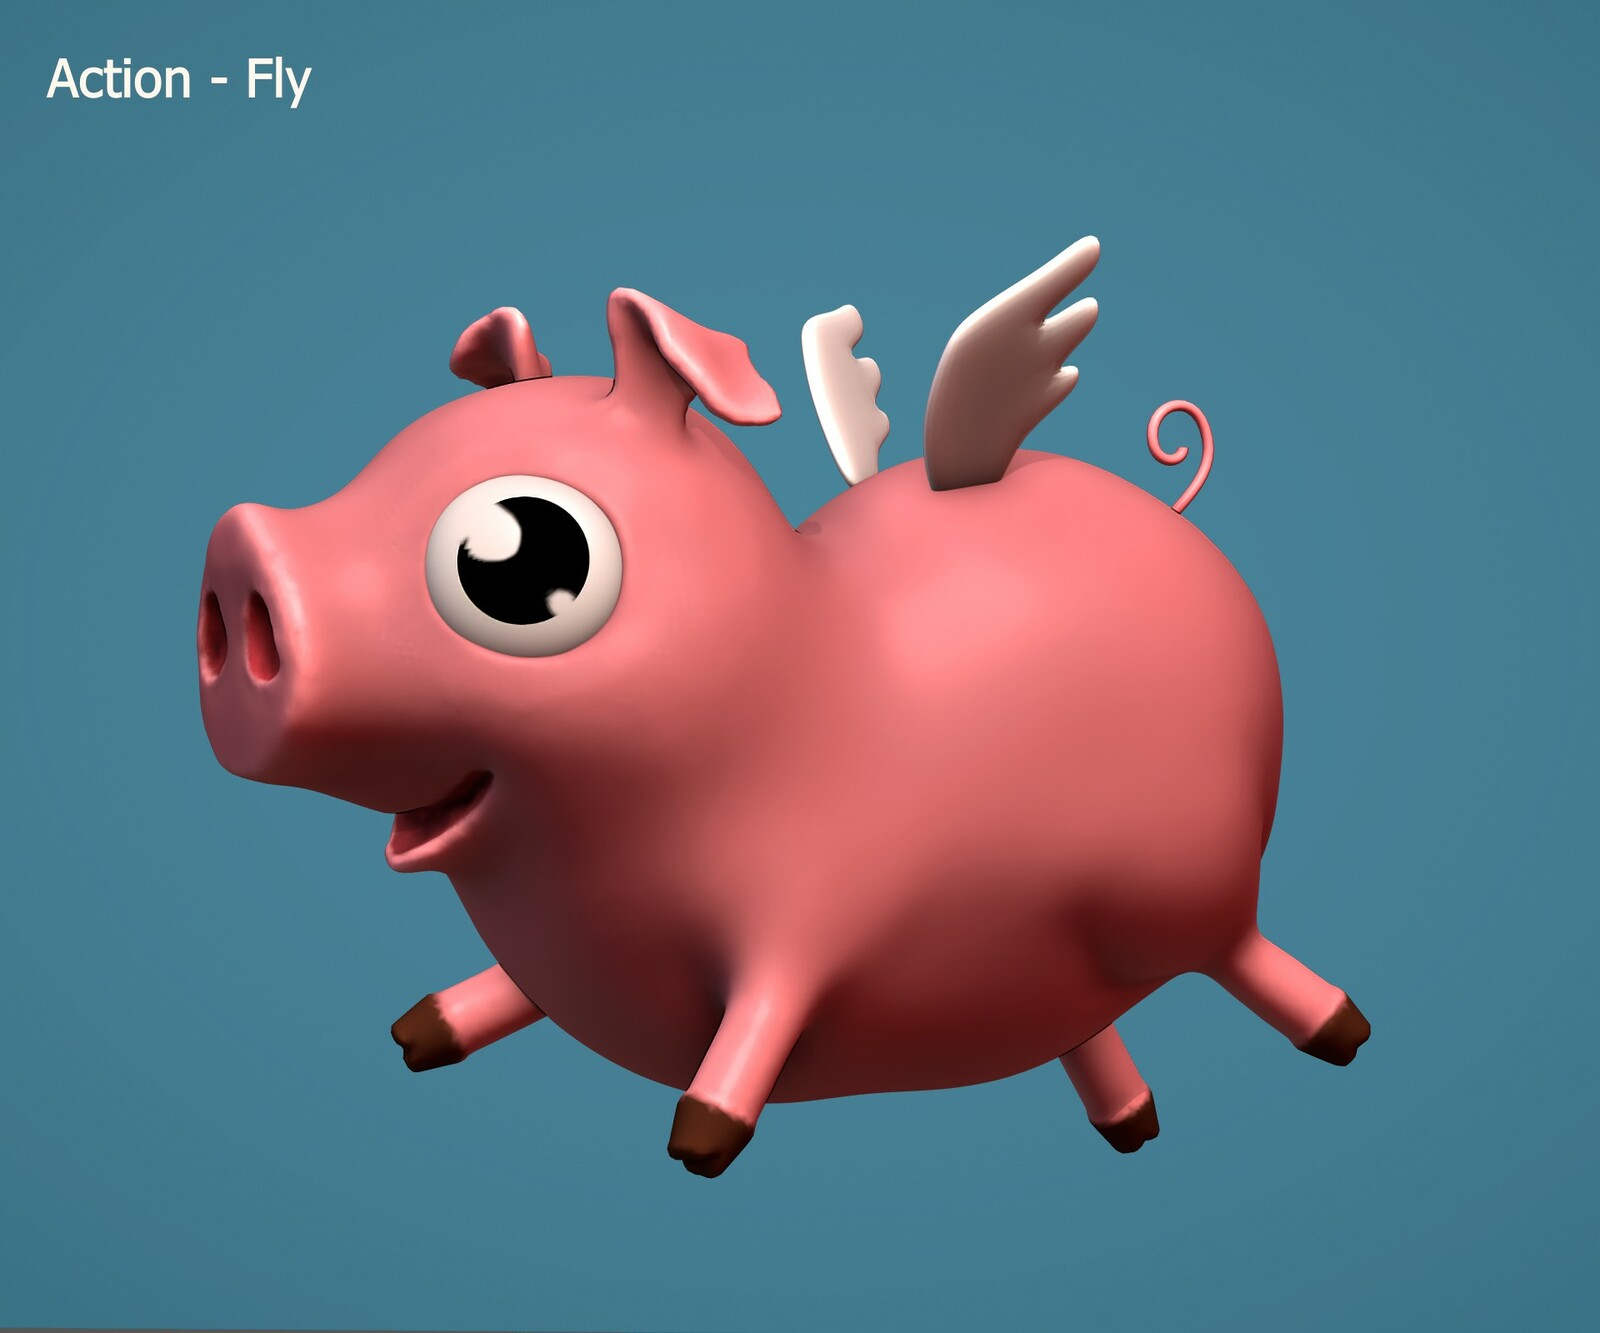 Flying pig - SculptJanuary2020, day 17